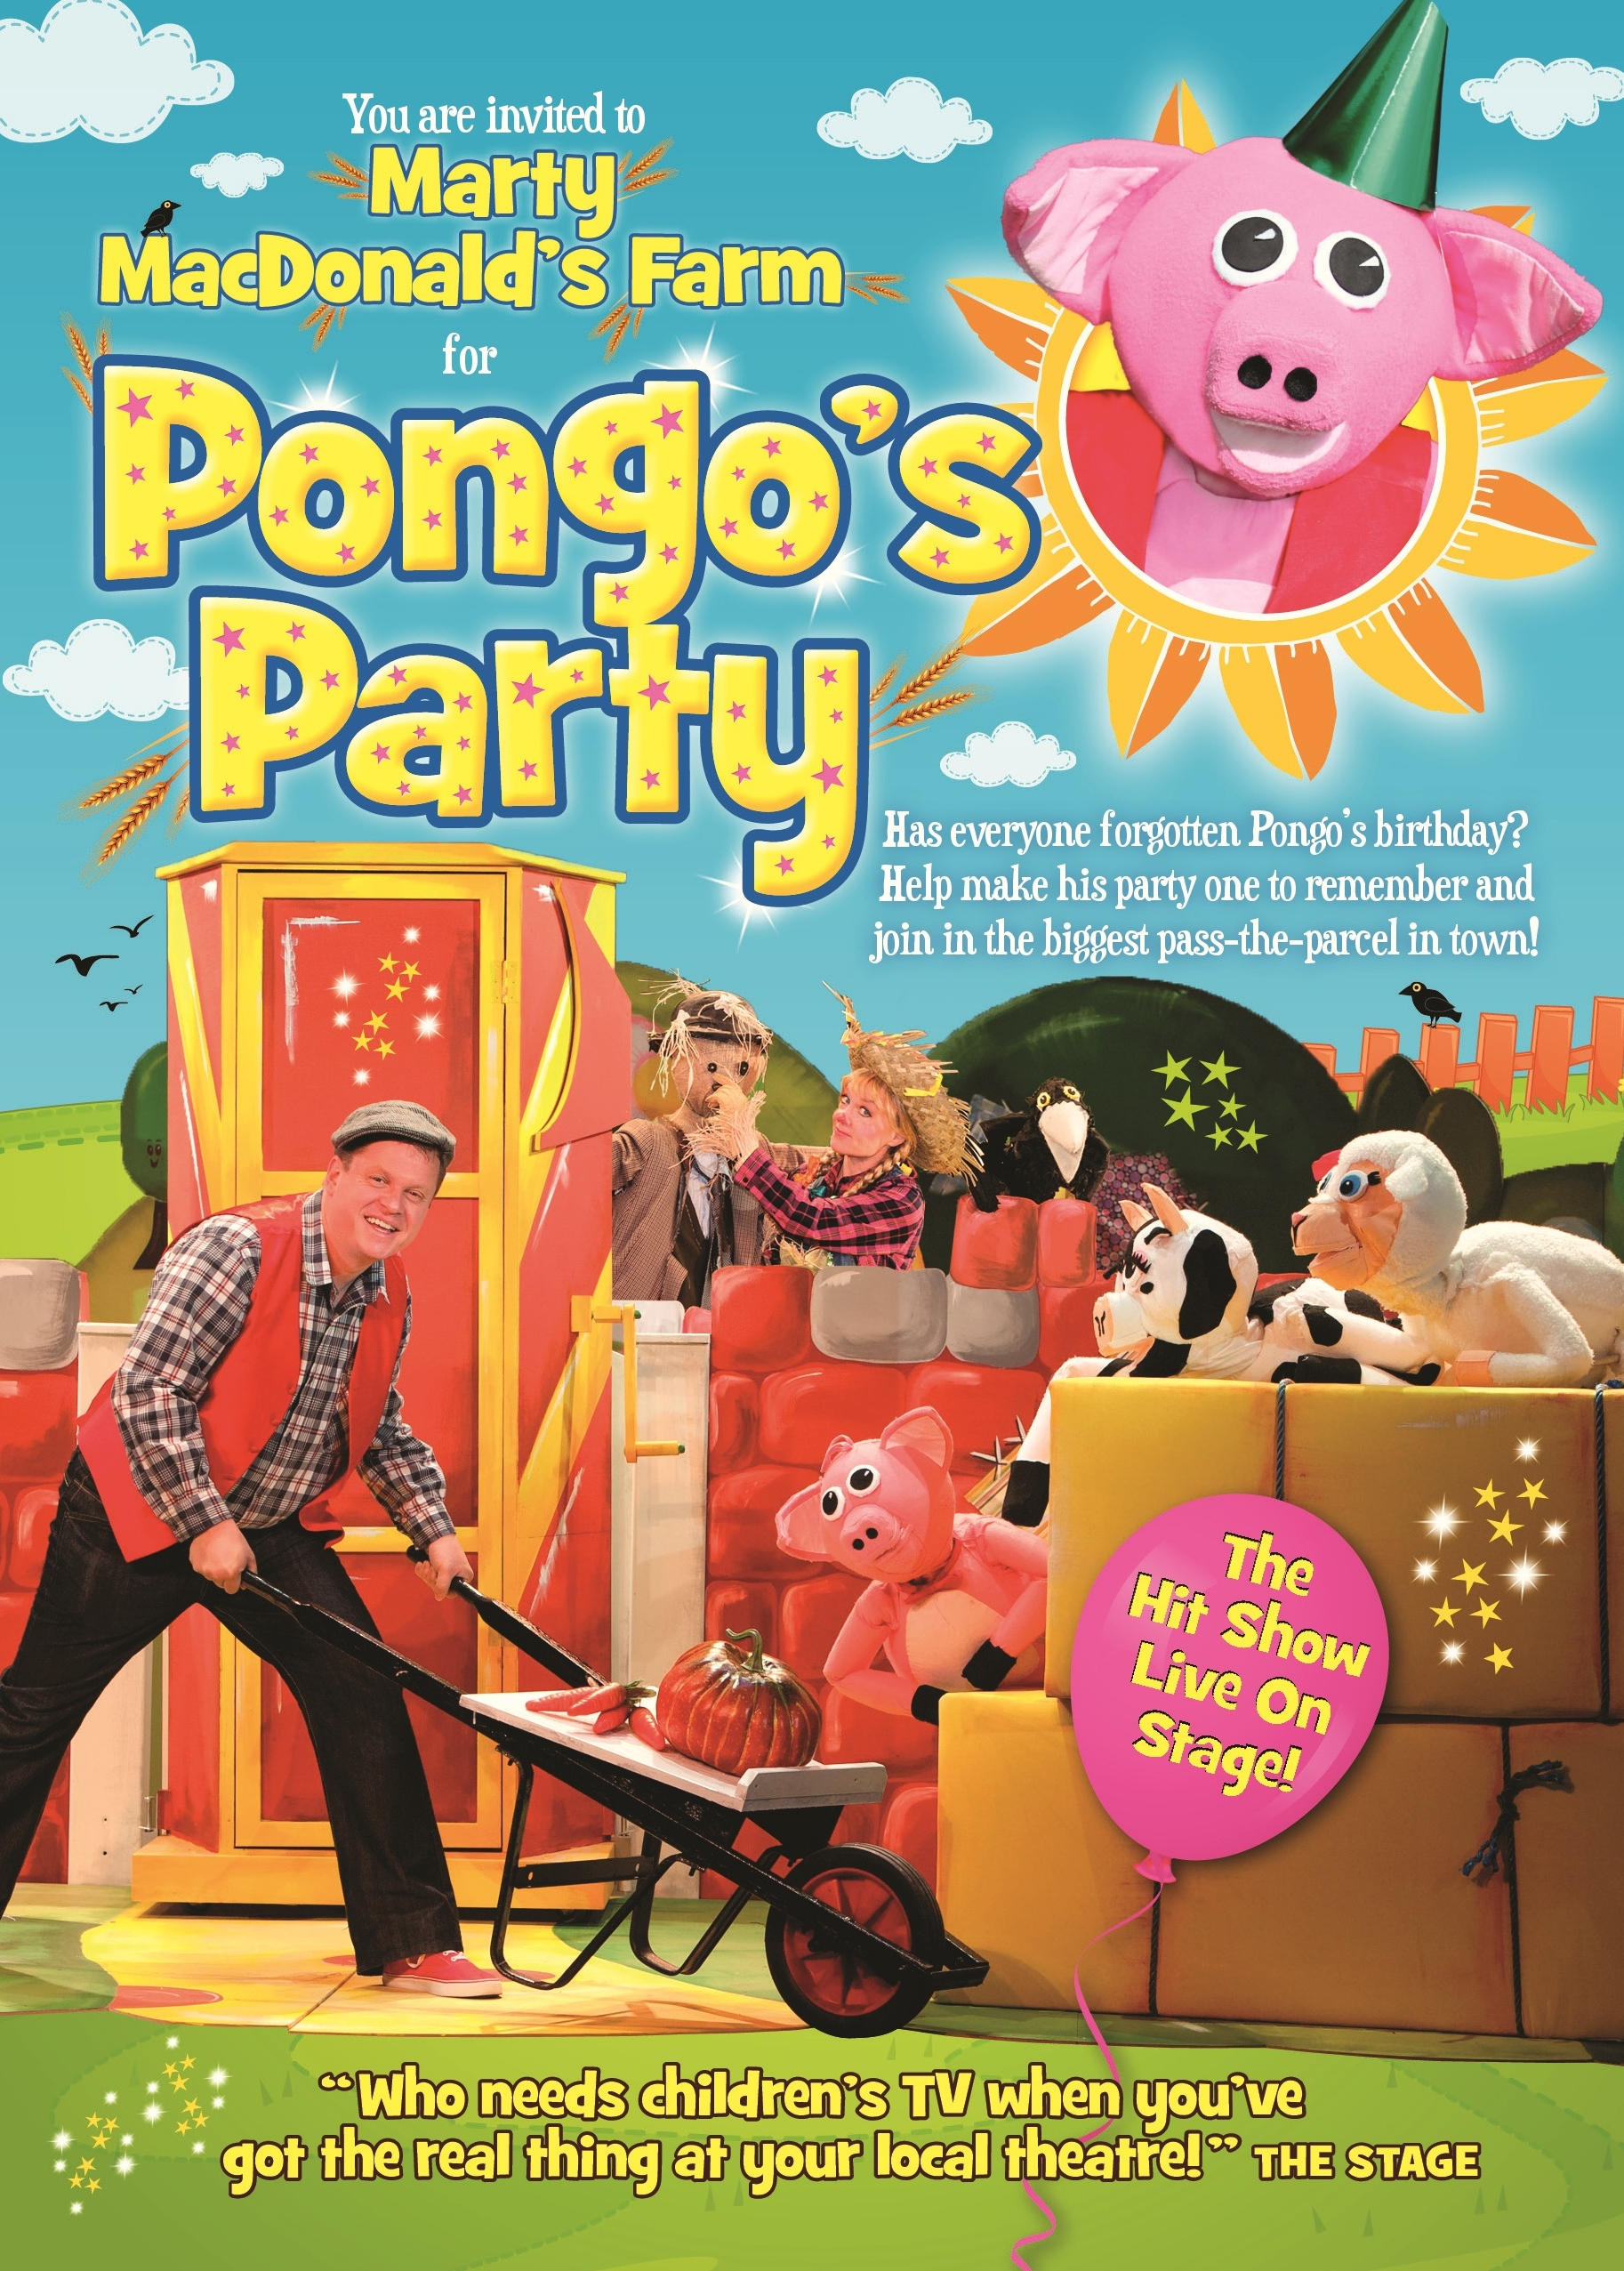 PONGO'S PARTY